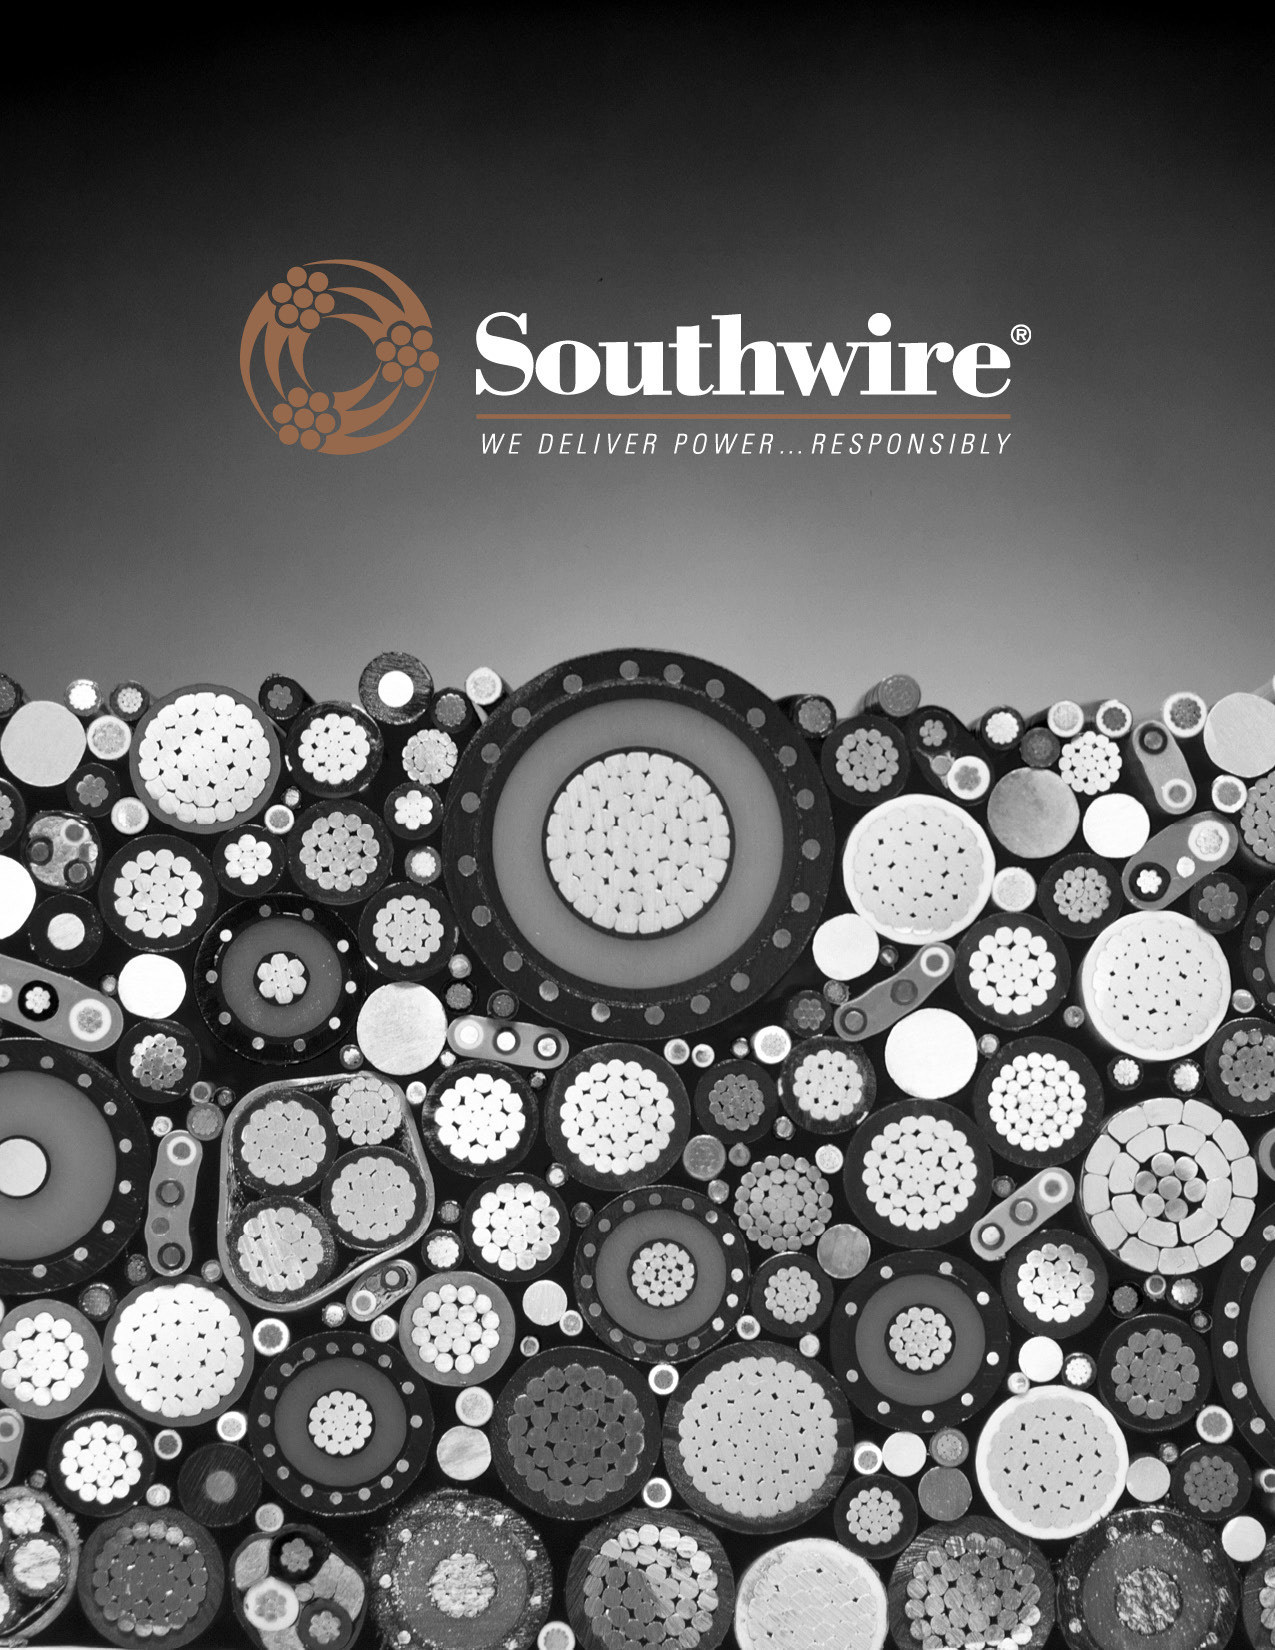 In support of the company's five-year strategic plan and in an effort to grow sustainably and profitably, Southwire announced that it will reorganize its executive leadership and business structure. The company is placing an increased emphasis on our core wire and cable business and looking at opportunities to focus more intently on areas like metals management, modernization, research and development and systems optimization.